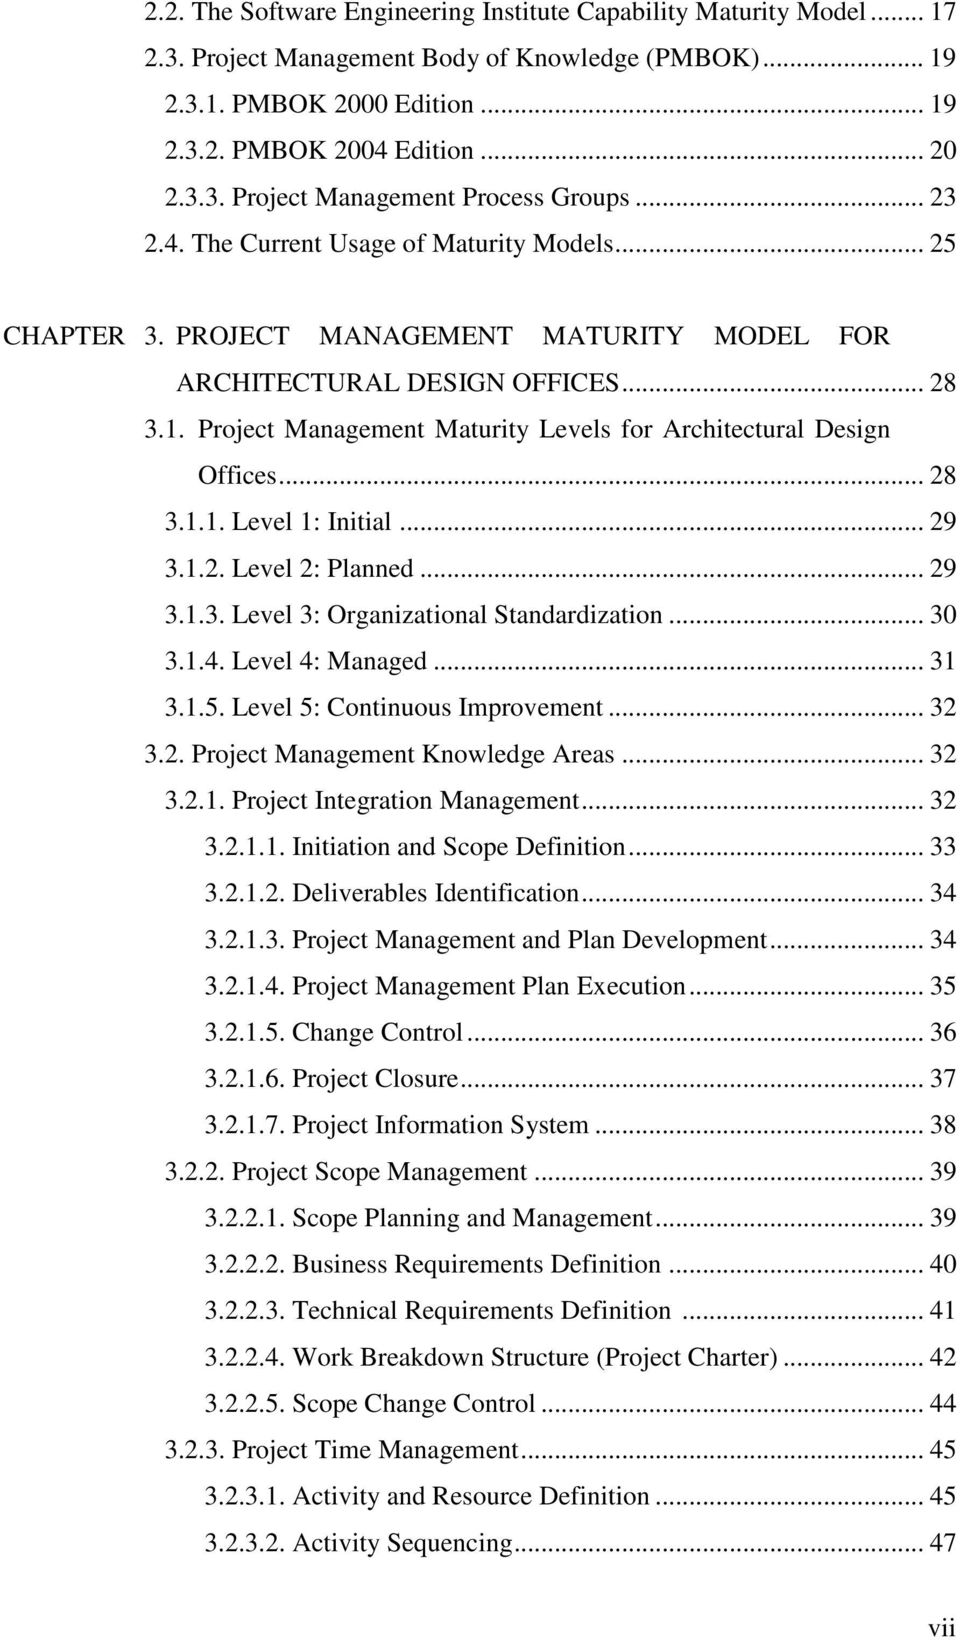 Project Management Maturity Levels for Architectural Design Offices... 28 3.1.1. Level 1: Initial... 29 3.1.2. Level 2: Planned... 29 3.1.3. Level 3: Organizational Standardization... 30 3.1.4.